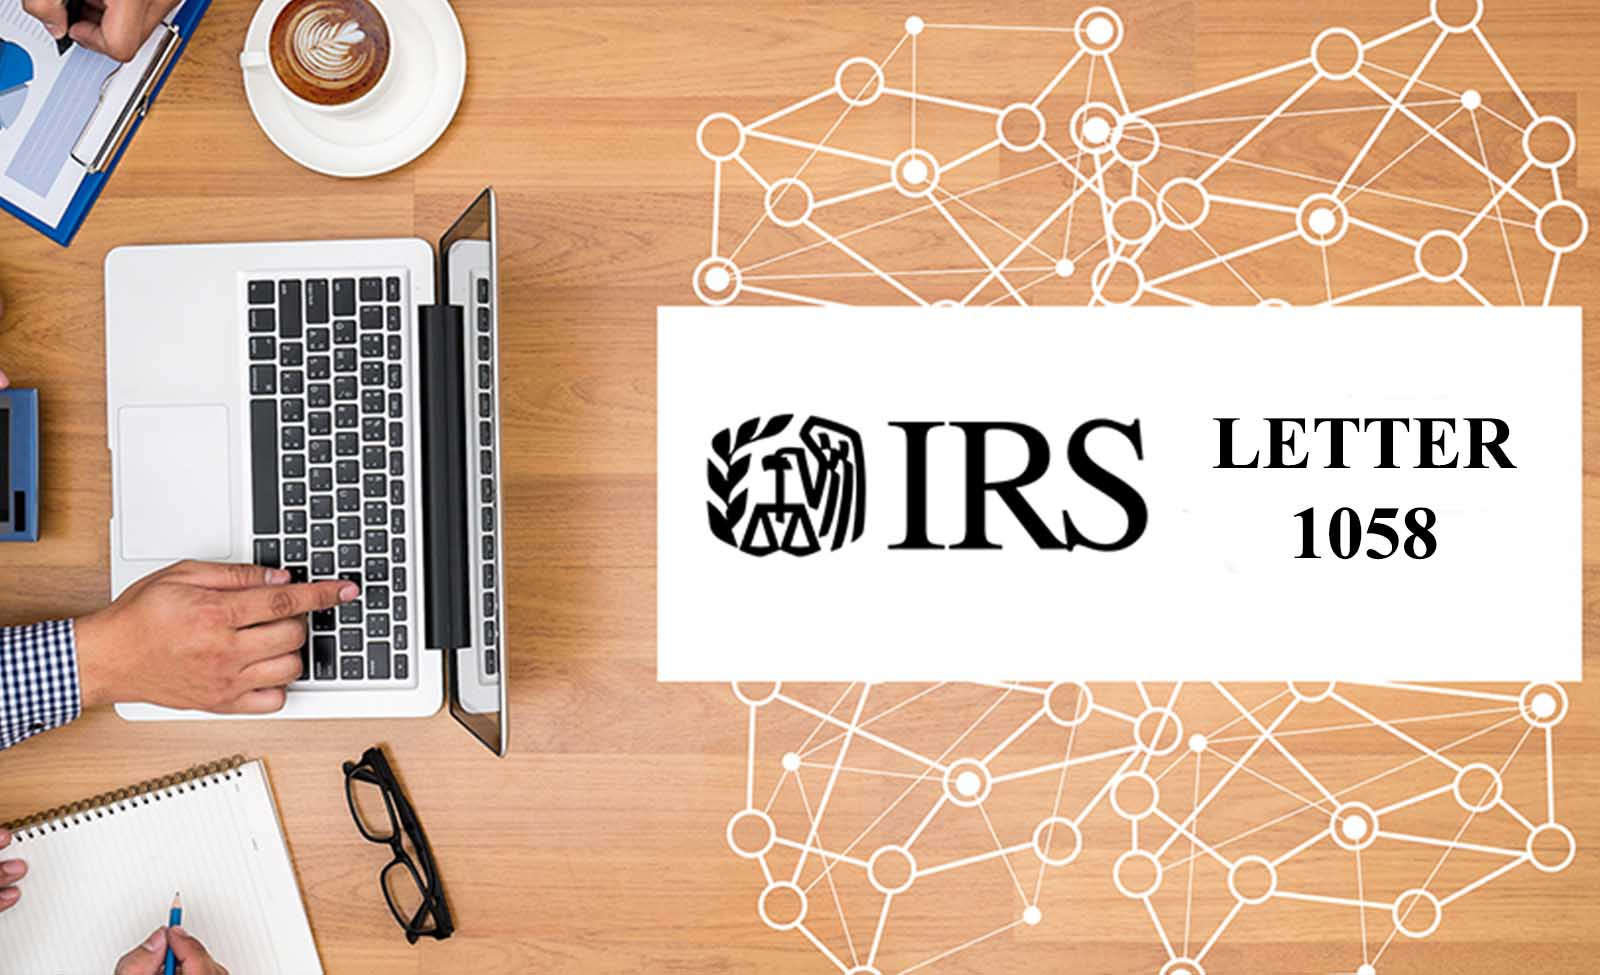 How to respond to IRS Tax Letter 1058